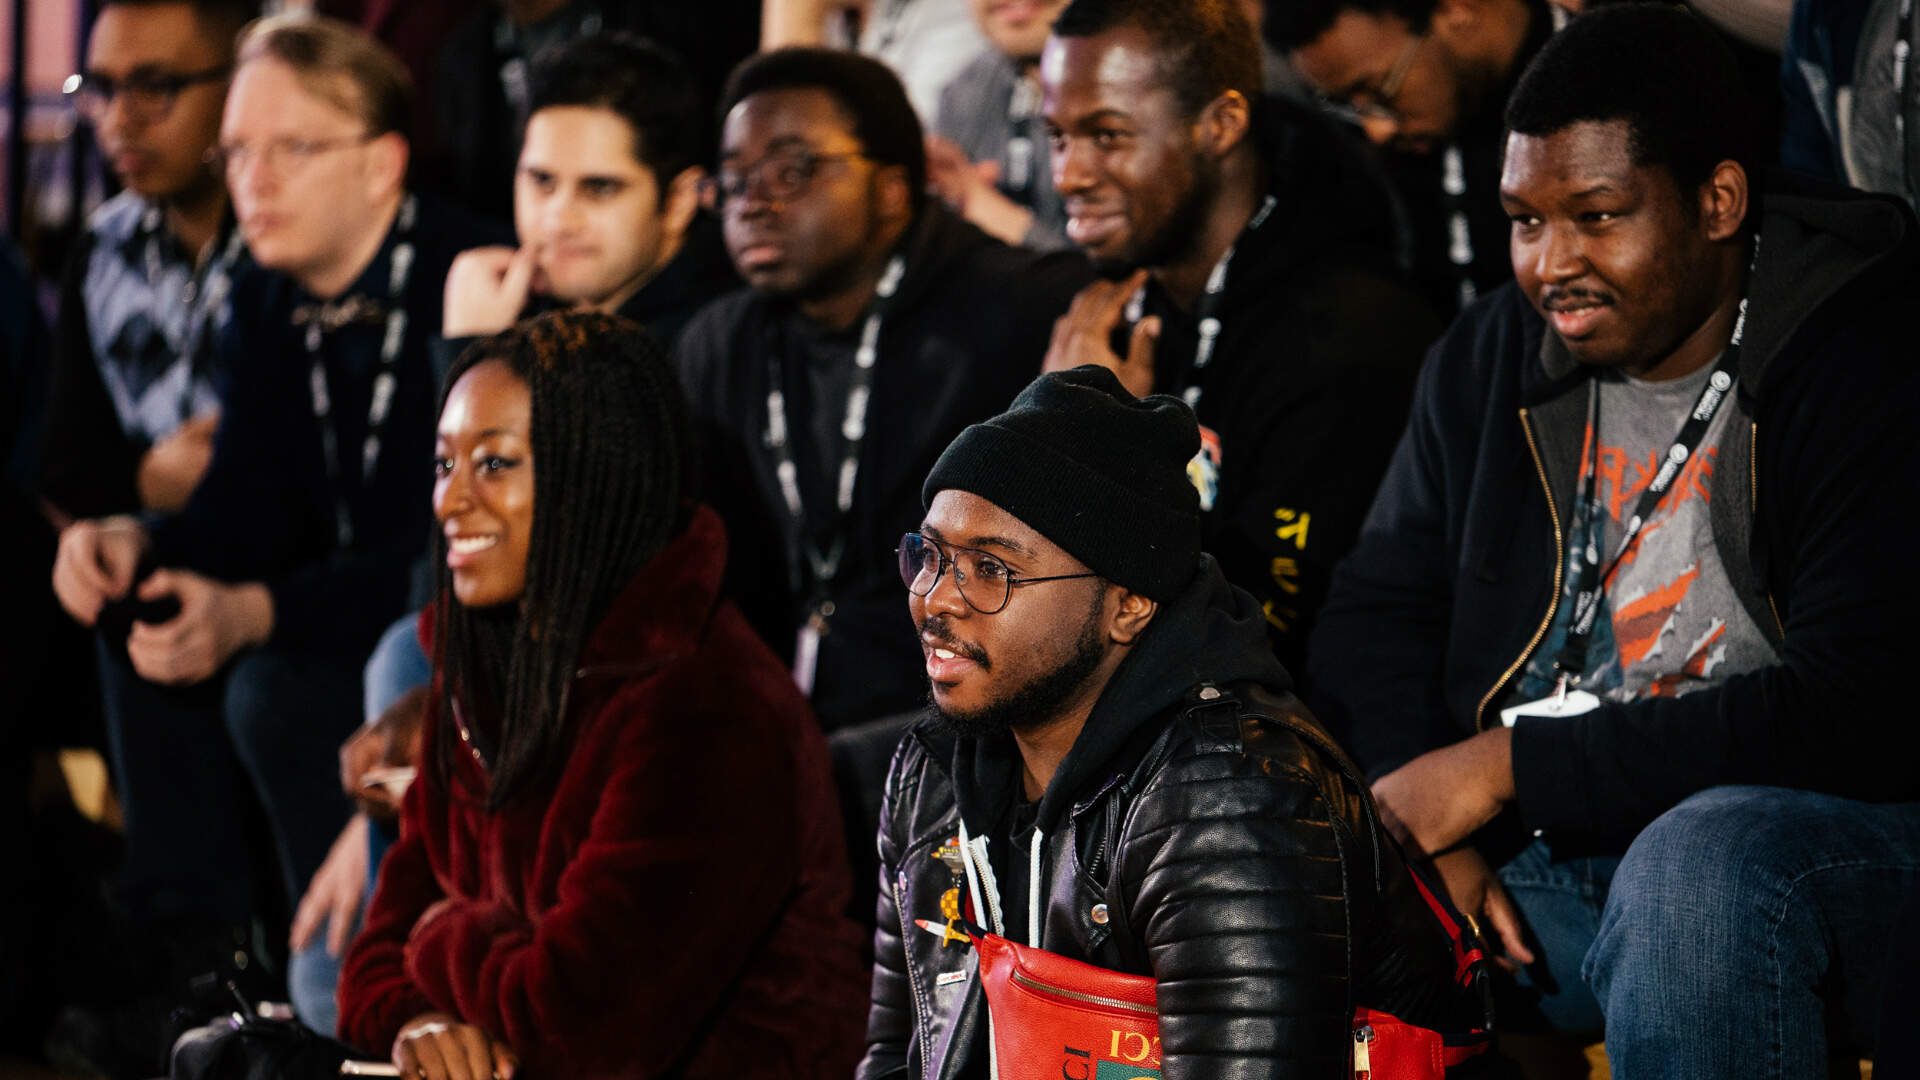 Black History Month: Where Are Our Black Gaming Journalists?